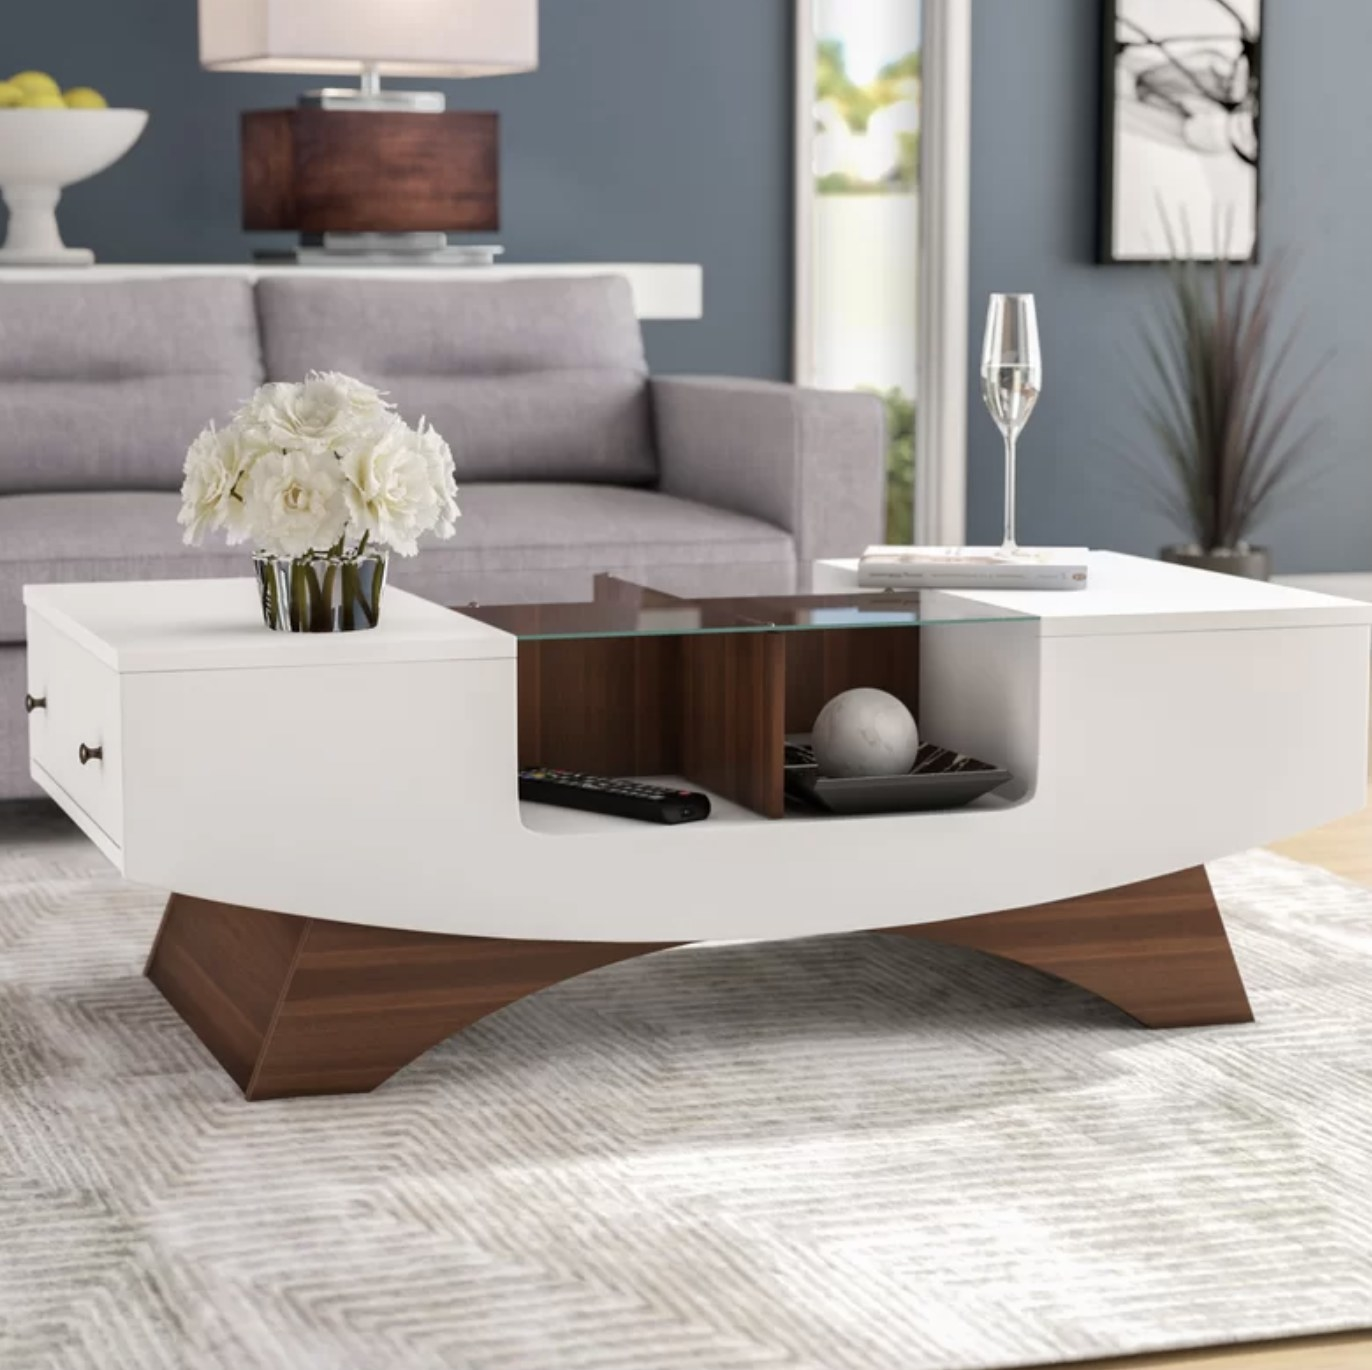 the coffee table in a living room in white